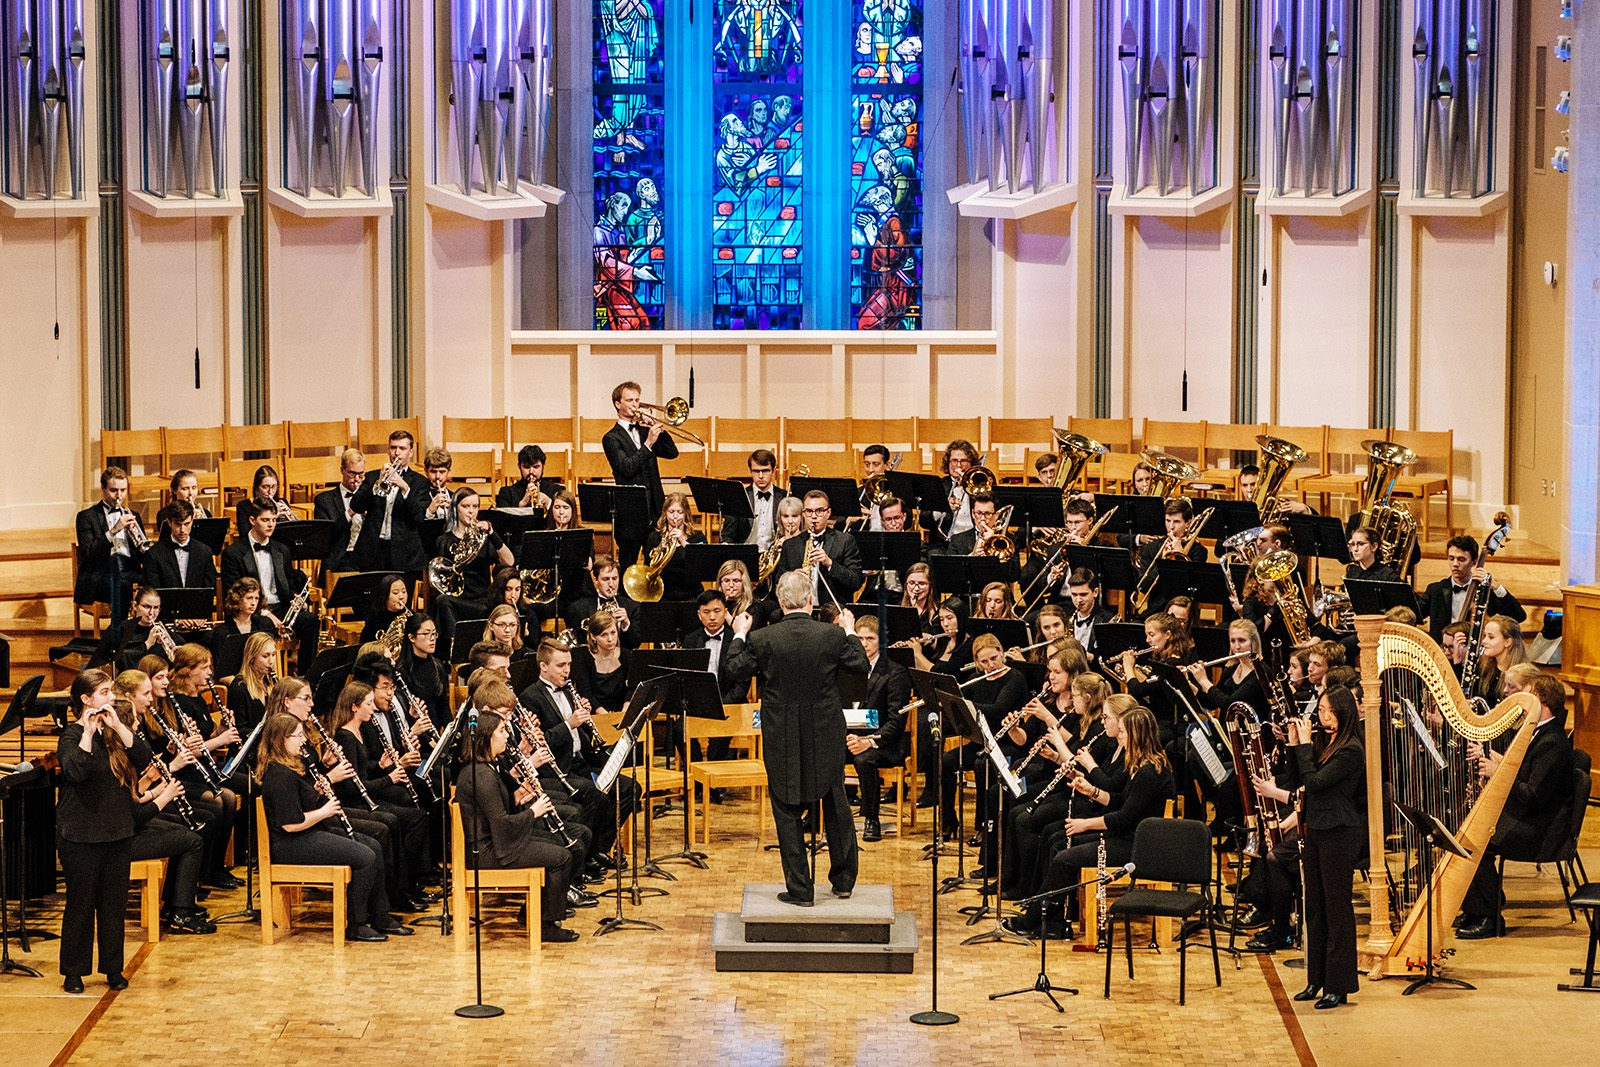 The St. Olaf Band performs in St. Olaf College's Boe Memorial Chapel prior to the COVID-19 pandemic. The band's Midwest tour this fall will be its first opportunity to perform for live audiences since February 2020.